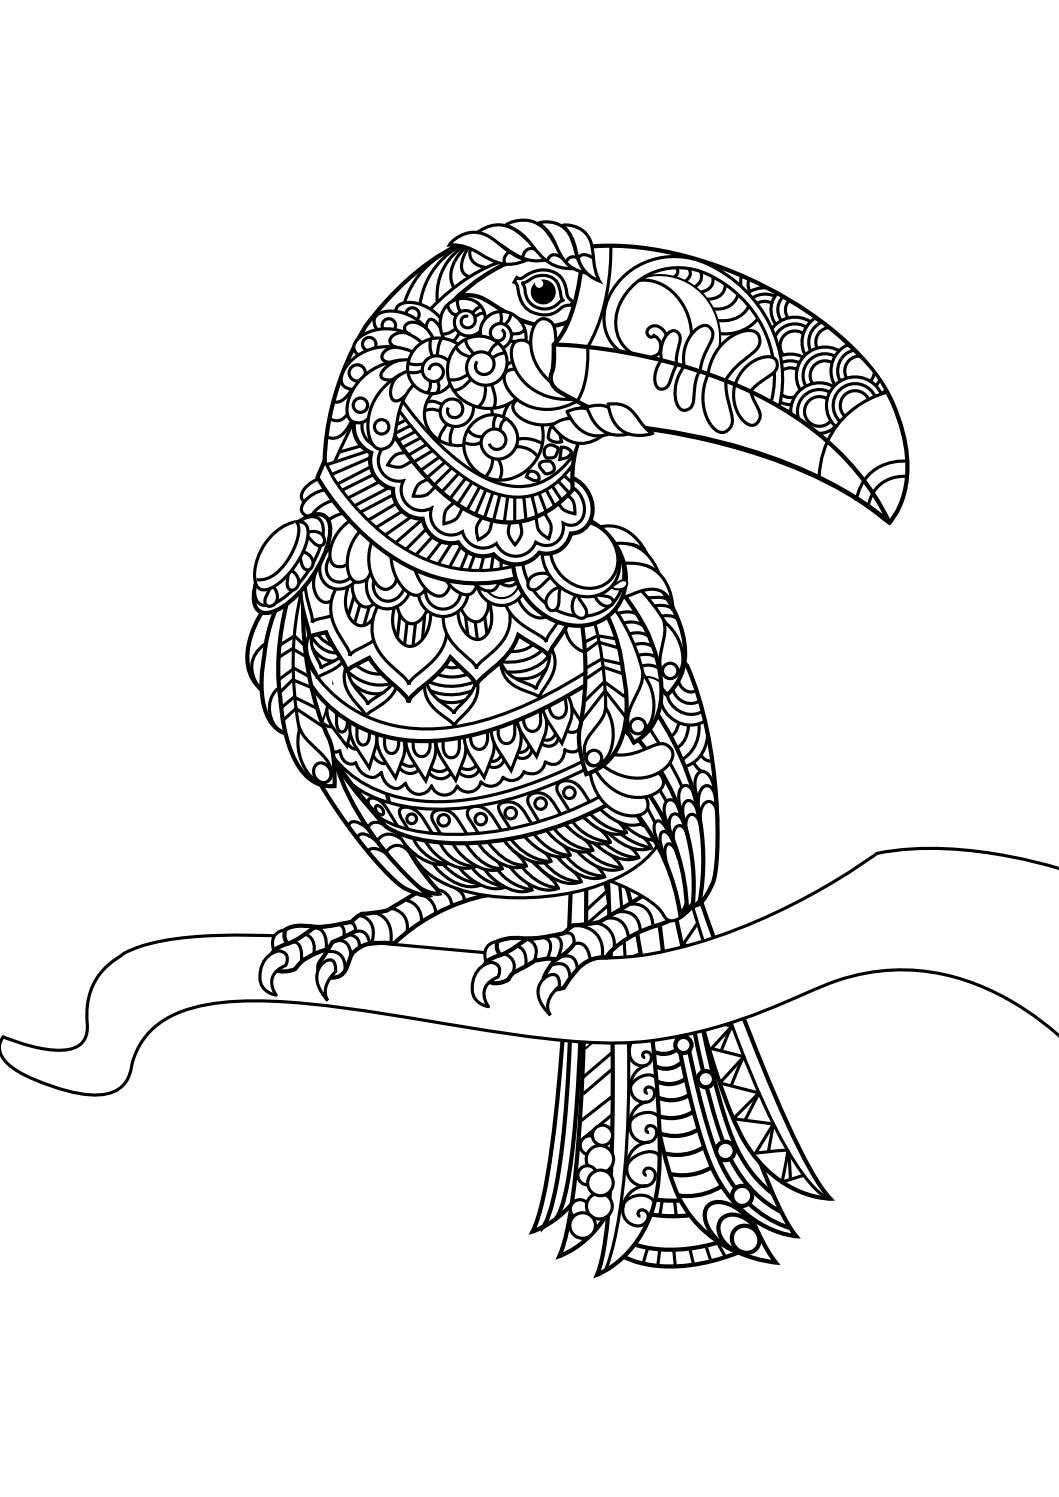 animal coloring pages pdf coloring birds and feathers pinterest animal coloring pages. Black Bedroom Furniture Sets. Home Design Ideas